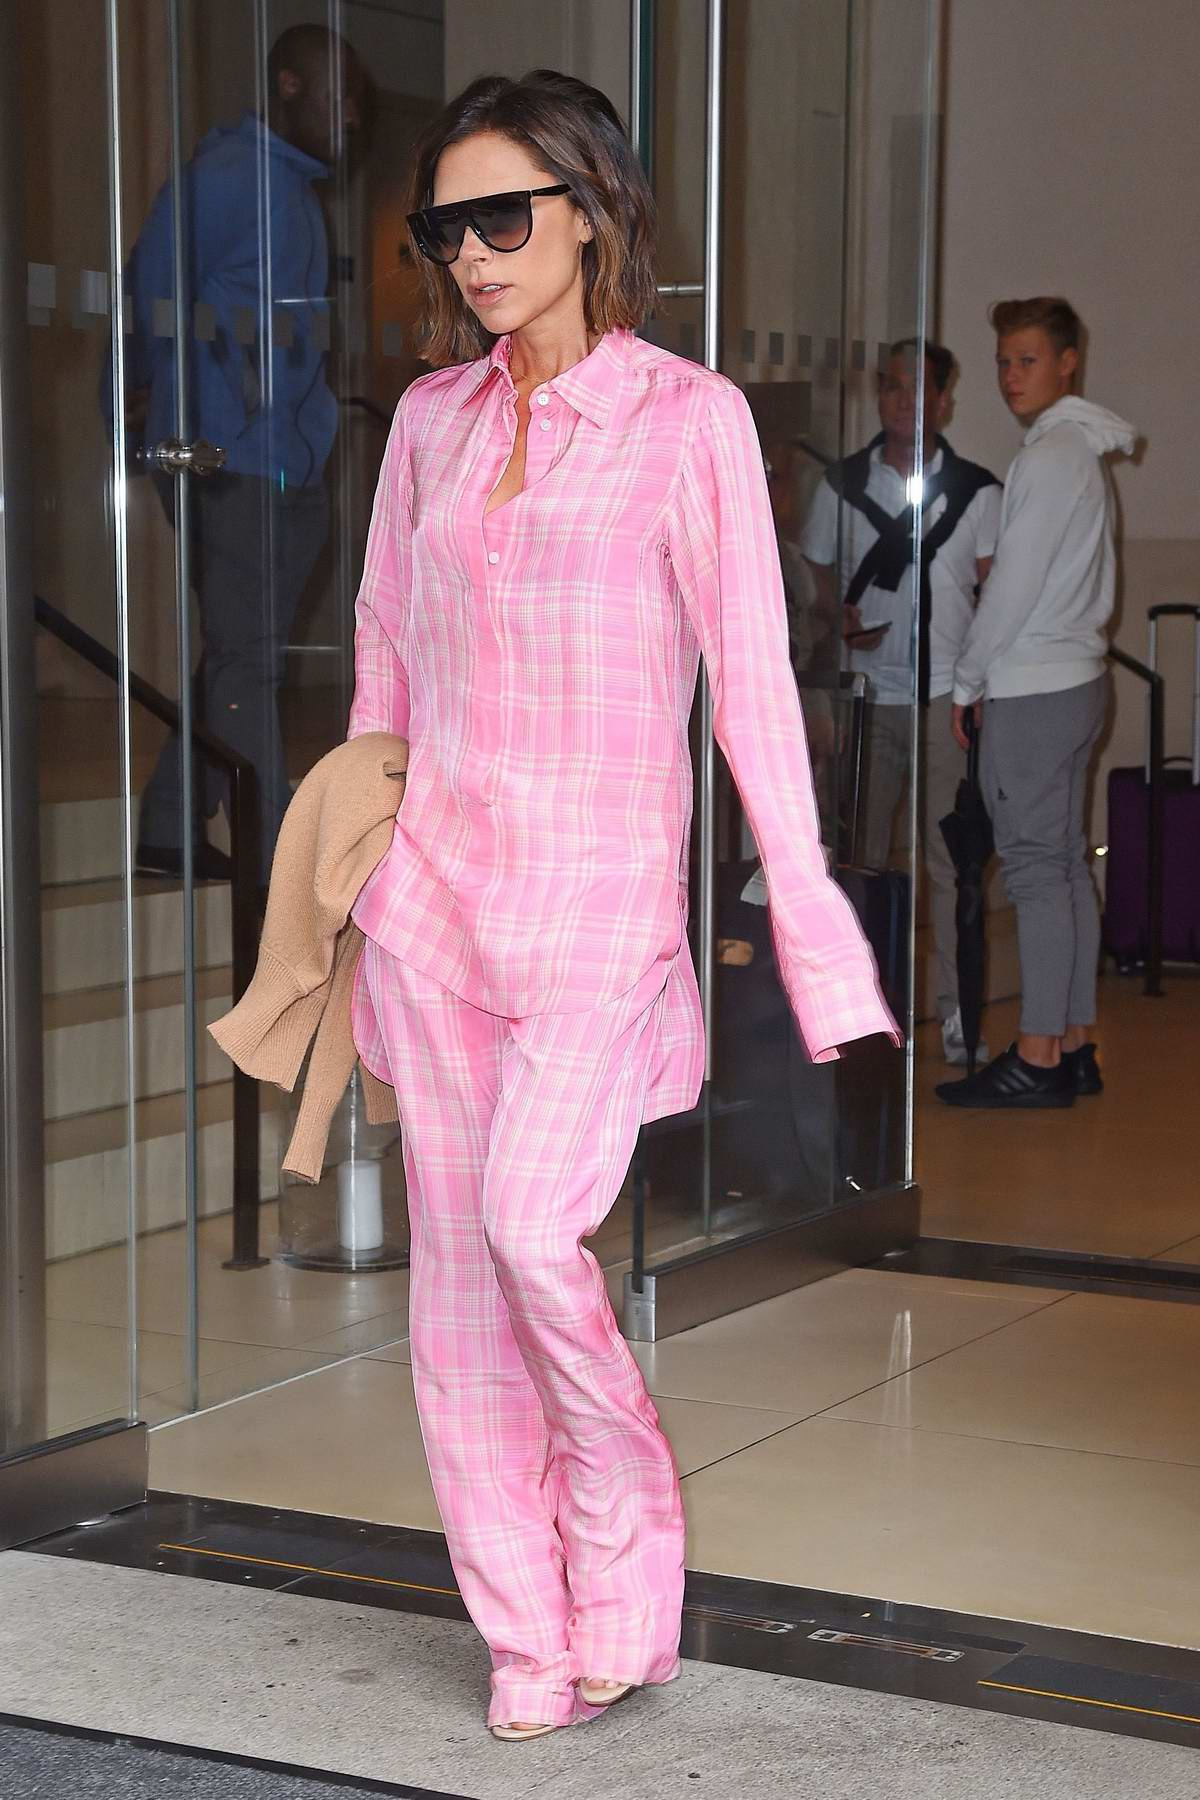 Victoria Beckham dressed in pink plaid leaving her hotel in New York City